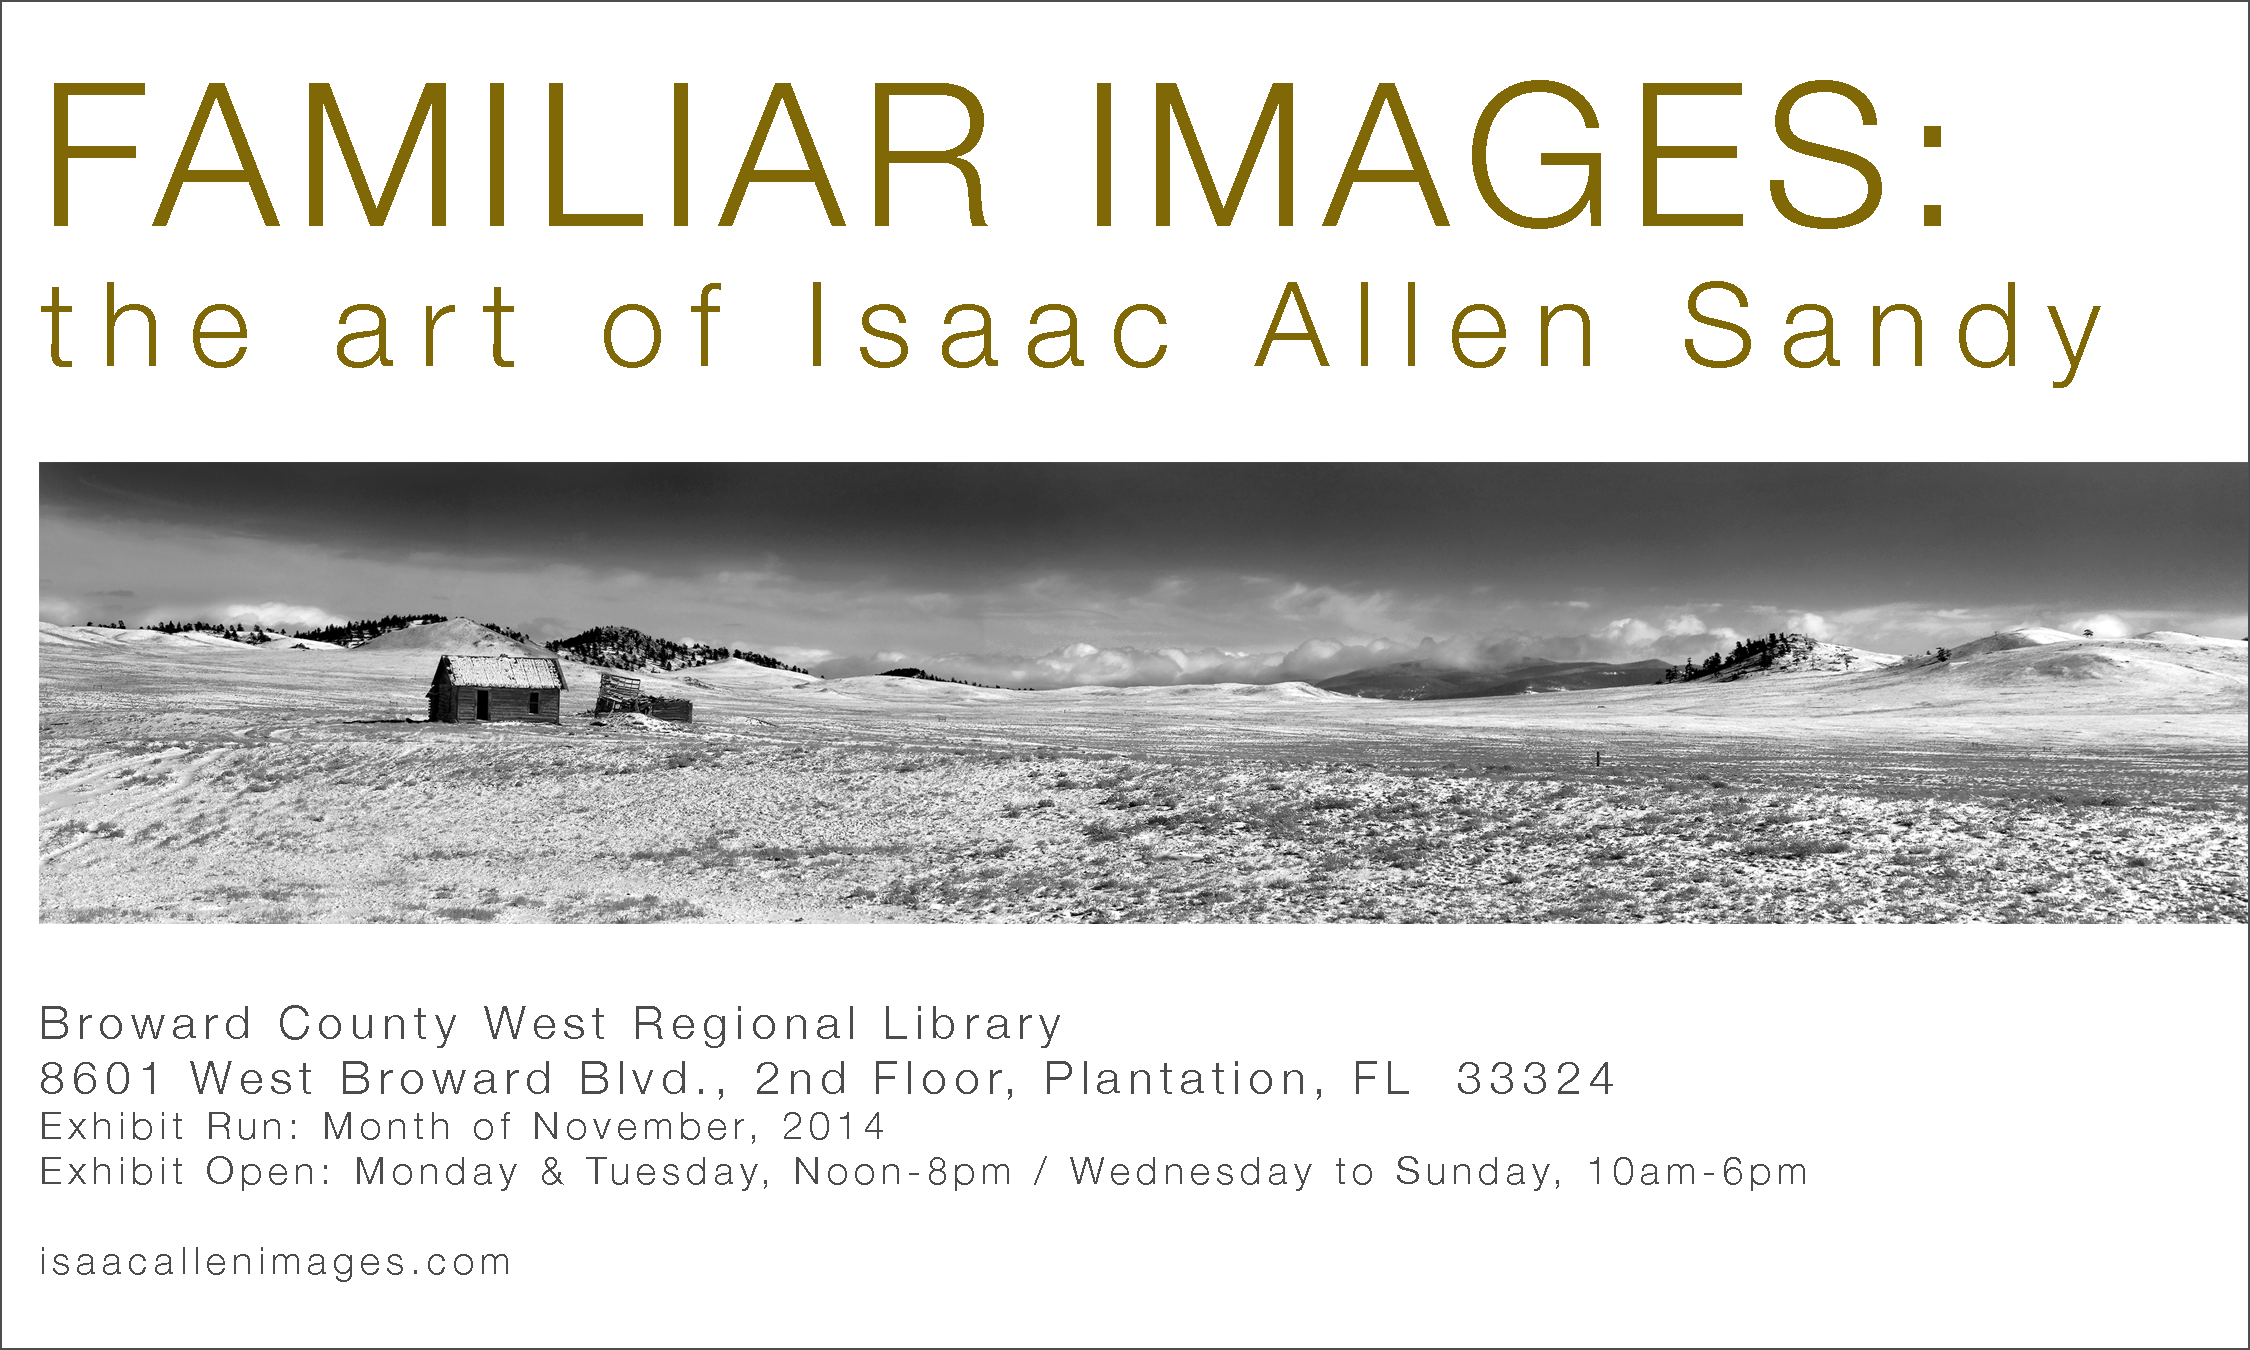 Isaac will be exhibiting a collection of his favorite work at the Broward County West Regional Library, Plantation, Florida in November!